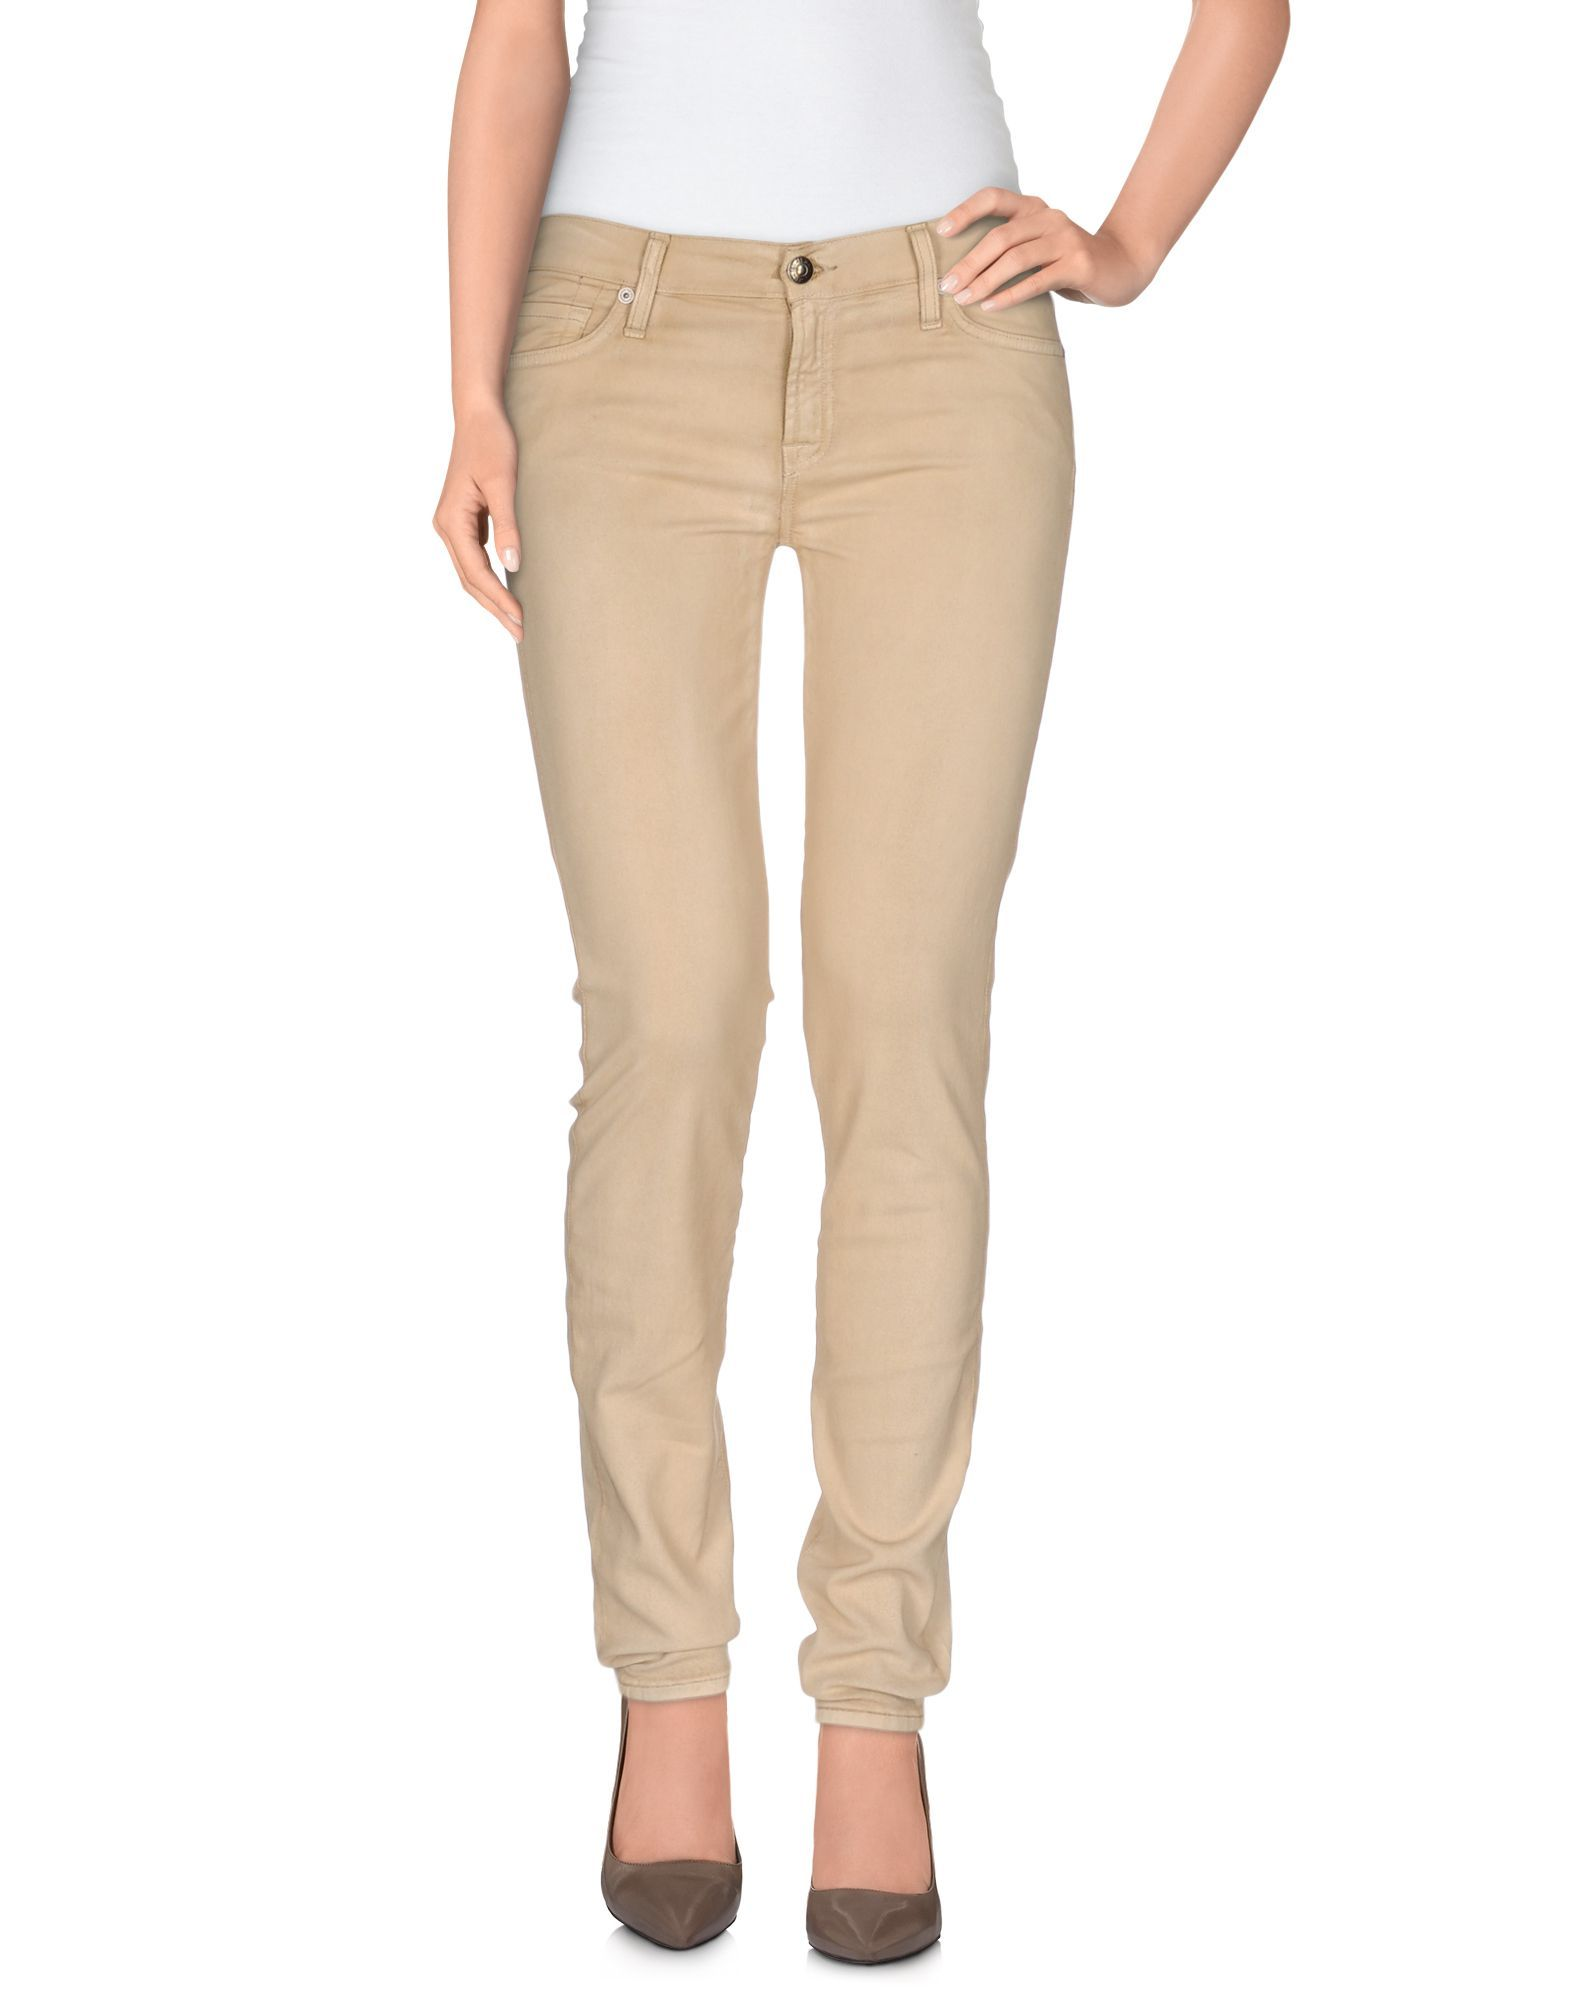 7 For All Mankind Beige Cotton Jeans